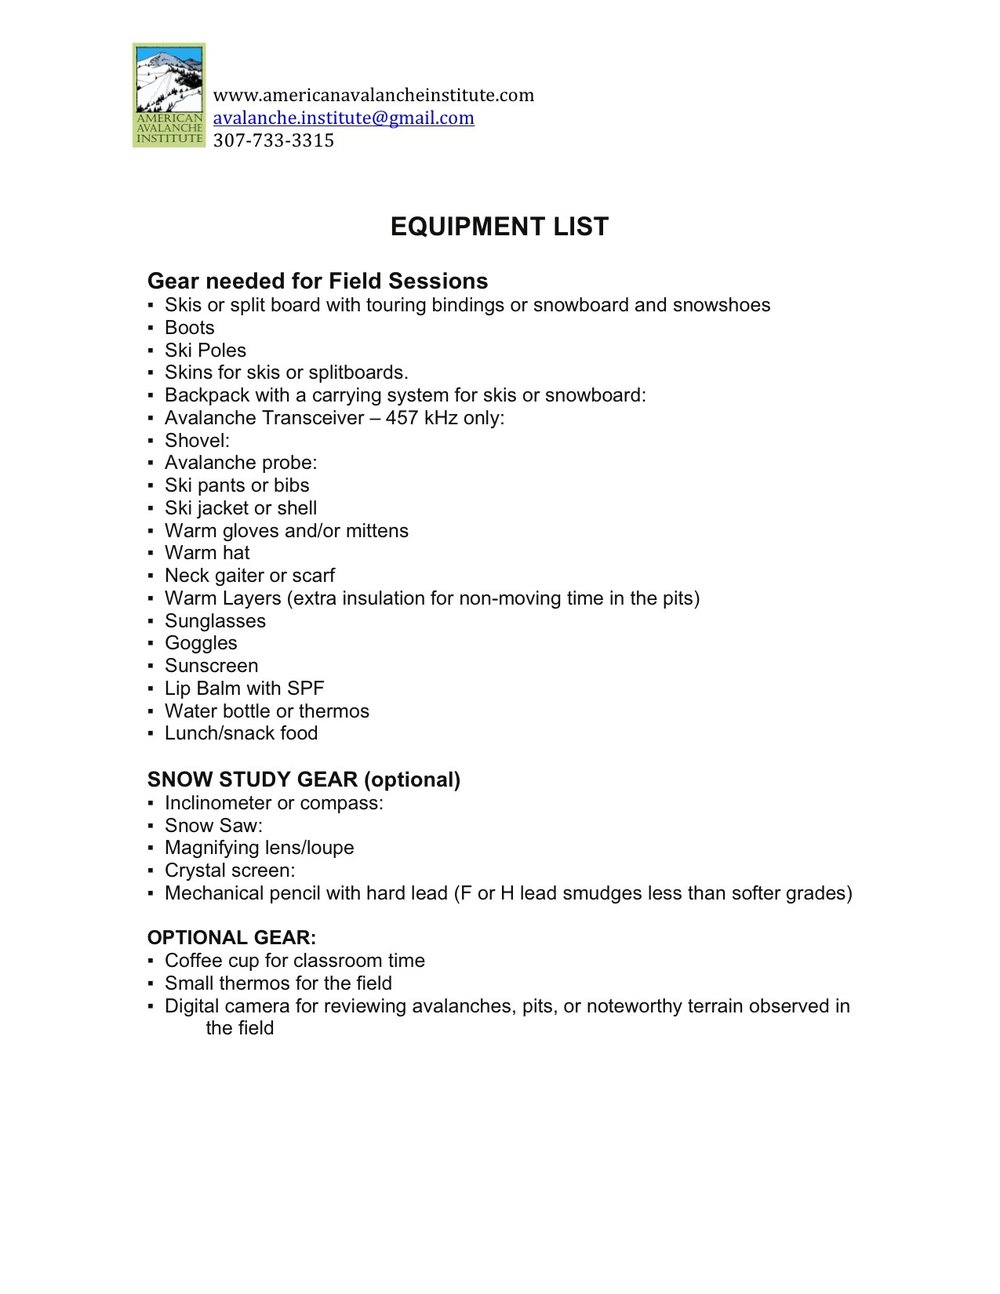 Equipment List.jpg